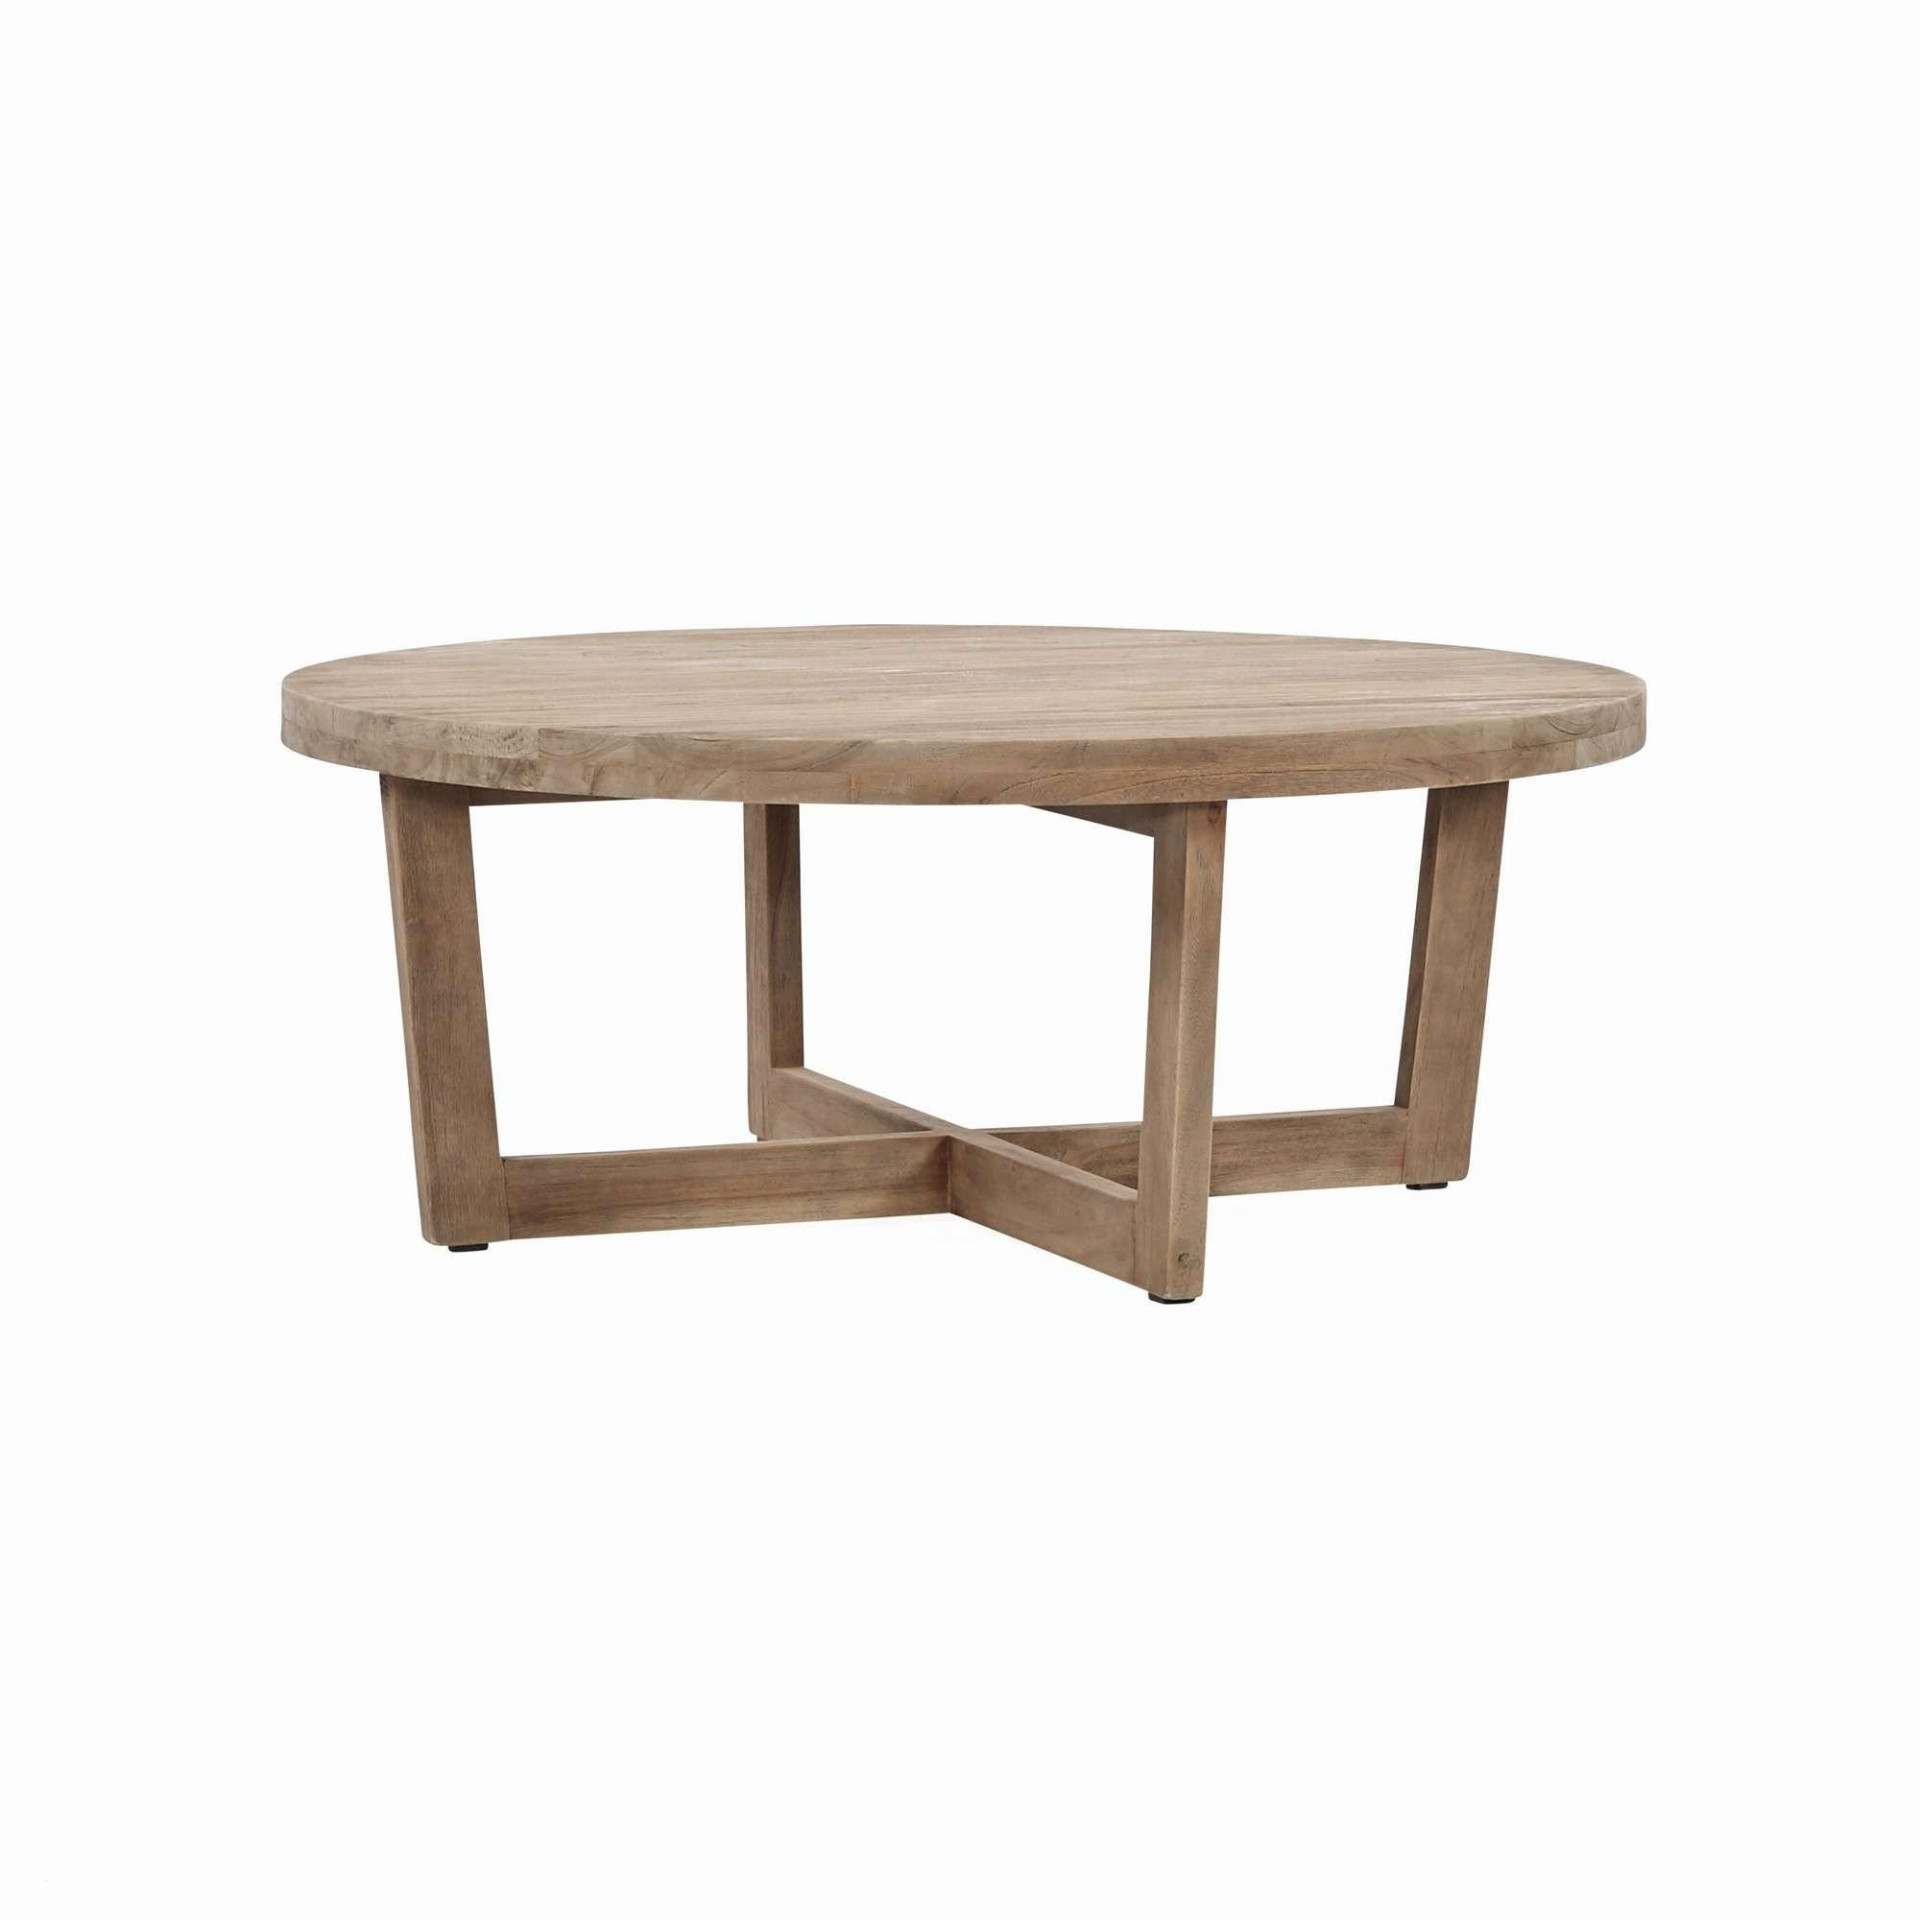 farmhouse coffee table set best fresh diy outdoor side accent small round end drop leaf kitchen chairs modern with drawer wide nightstand drawers entry benches furniture pearl